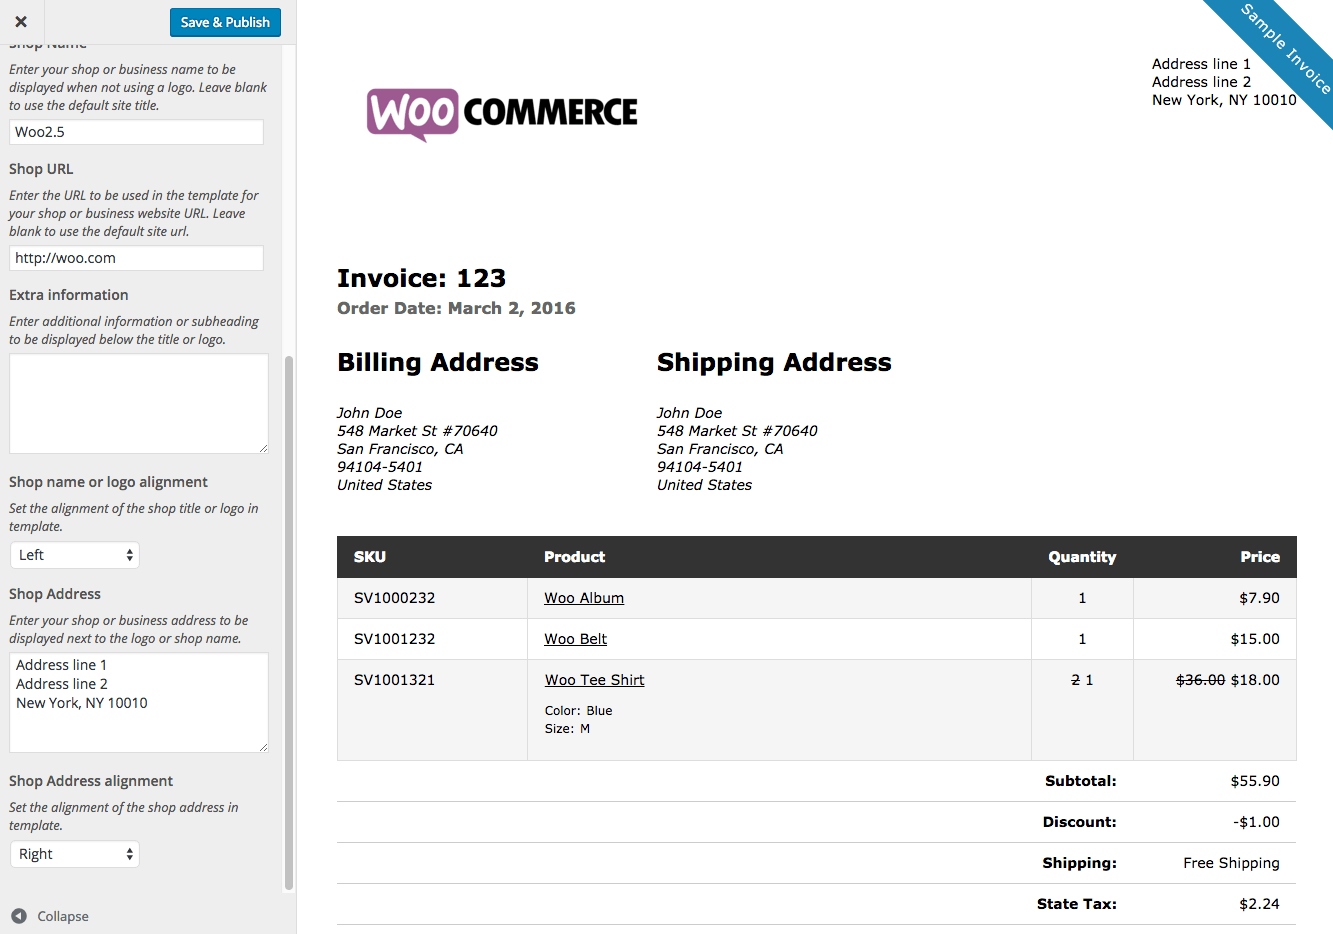 Atvingus  Mesmerizing Print Invoices Amp Packing Lists  Woocommerce With Foxy Woocommerce Print Invoices  Packing Lists Customizer With Archaic Purple Heart Donation Receipt Also Cash Receipt Template Excel In Addition Babies R Us Return No Receipt And Make Your Own Receipt Book As Well As Receipt Thesaurus Additionally Receipt Reader App From Woocommercecom With Atvingus  Foxy Print Invoices Amp Packing Lists  Woocommerce With Archaic Woocommerce Print Invoices  Packing Lists Customizer And Mesmerizing Purple Heart Donation Receipt Also Cash Receipt Template Excel In Addition Babies R Us Return No Receipt From Woocommercecom